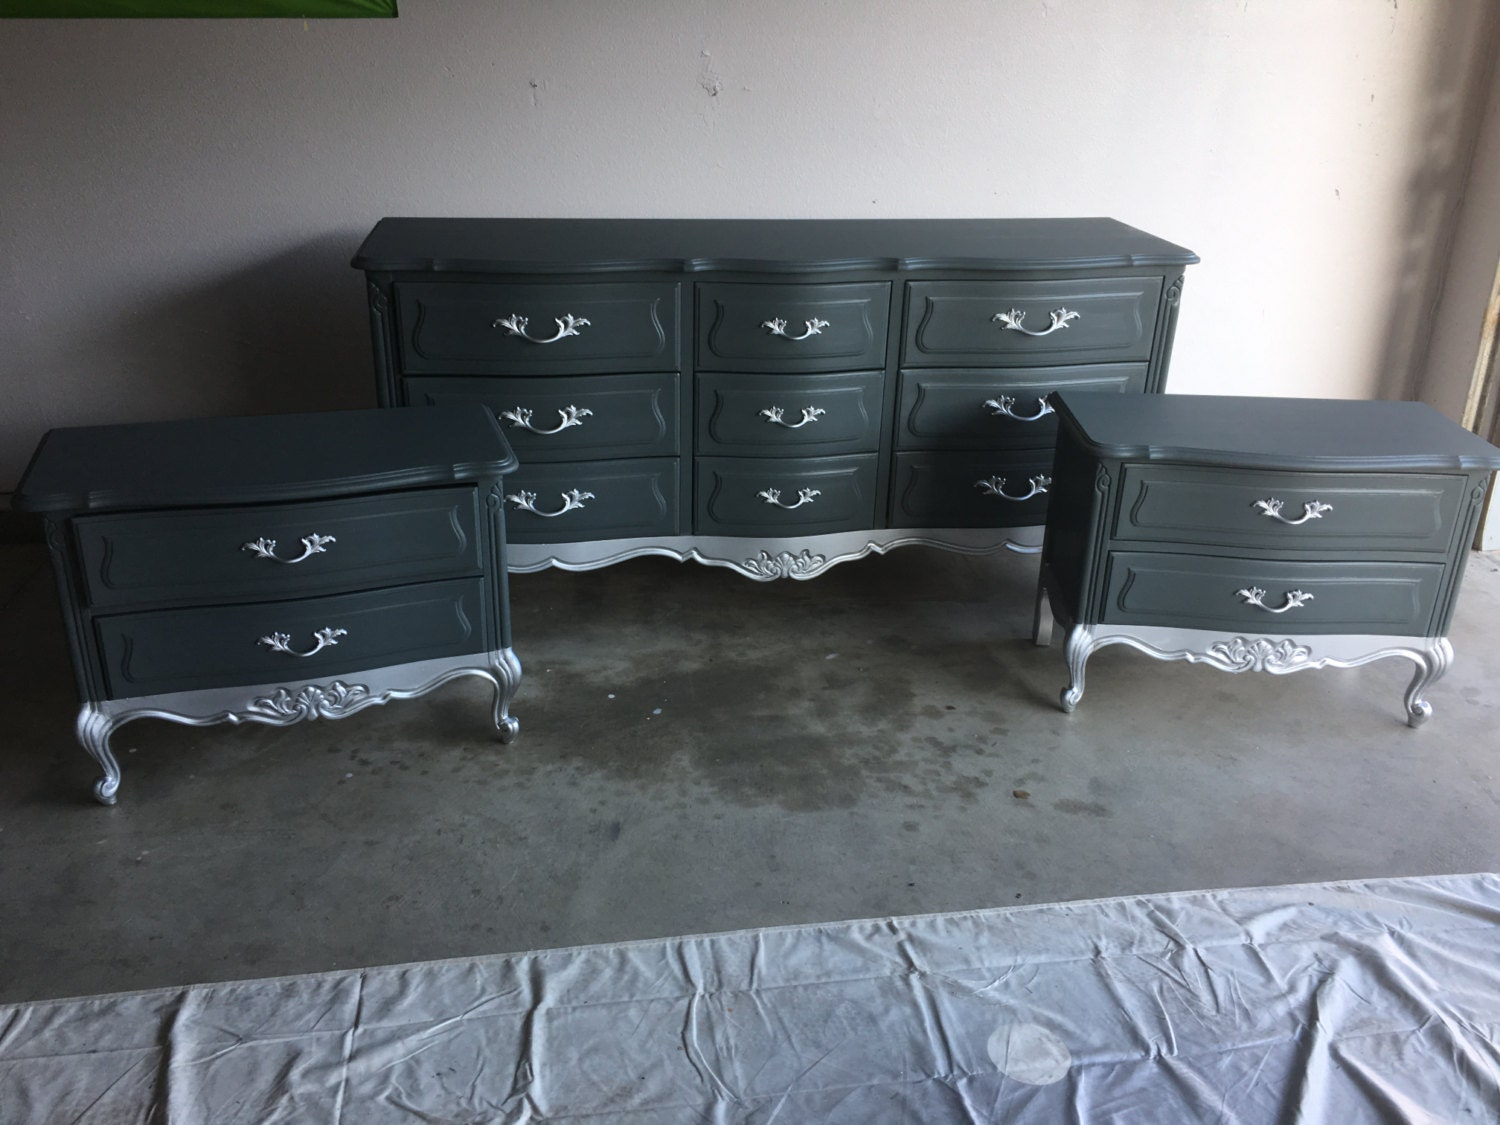 Sample Grey And Silver Dipped French Provincial Bedroom Set Dresser And Nightstands